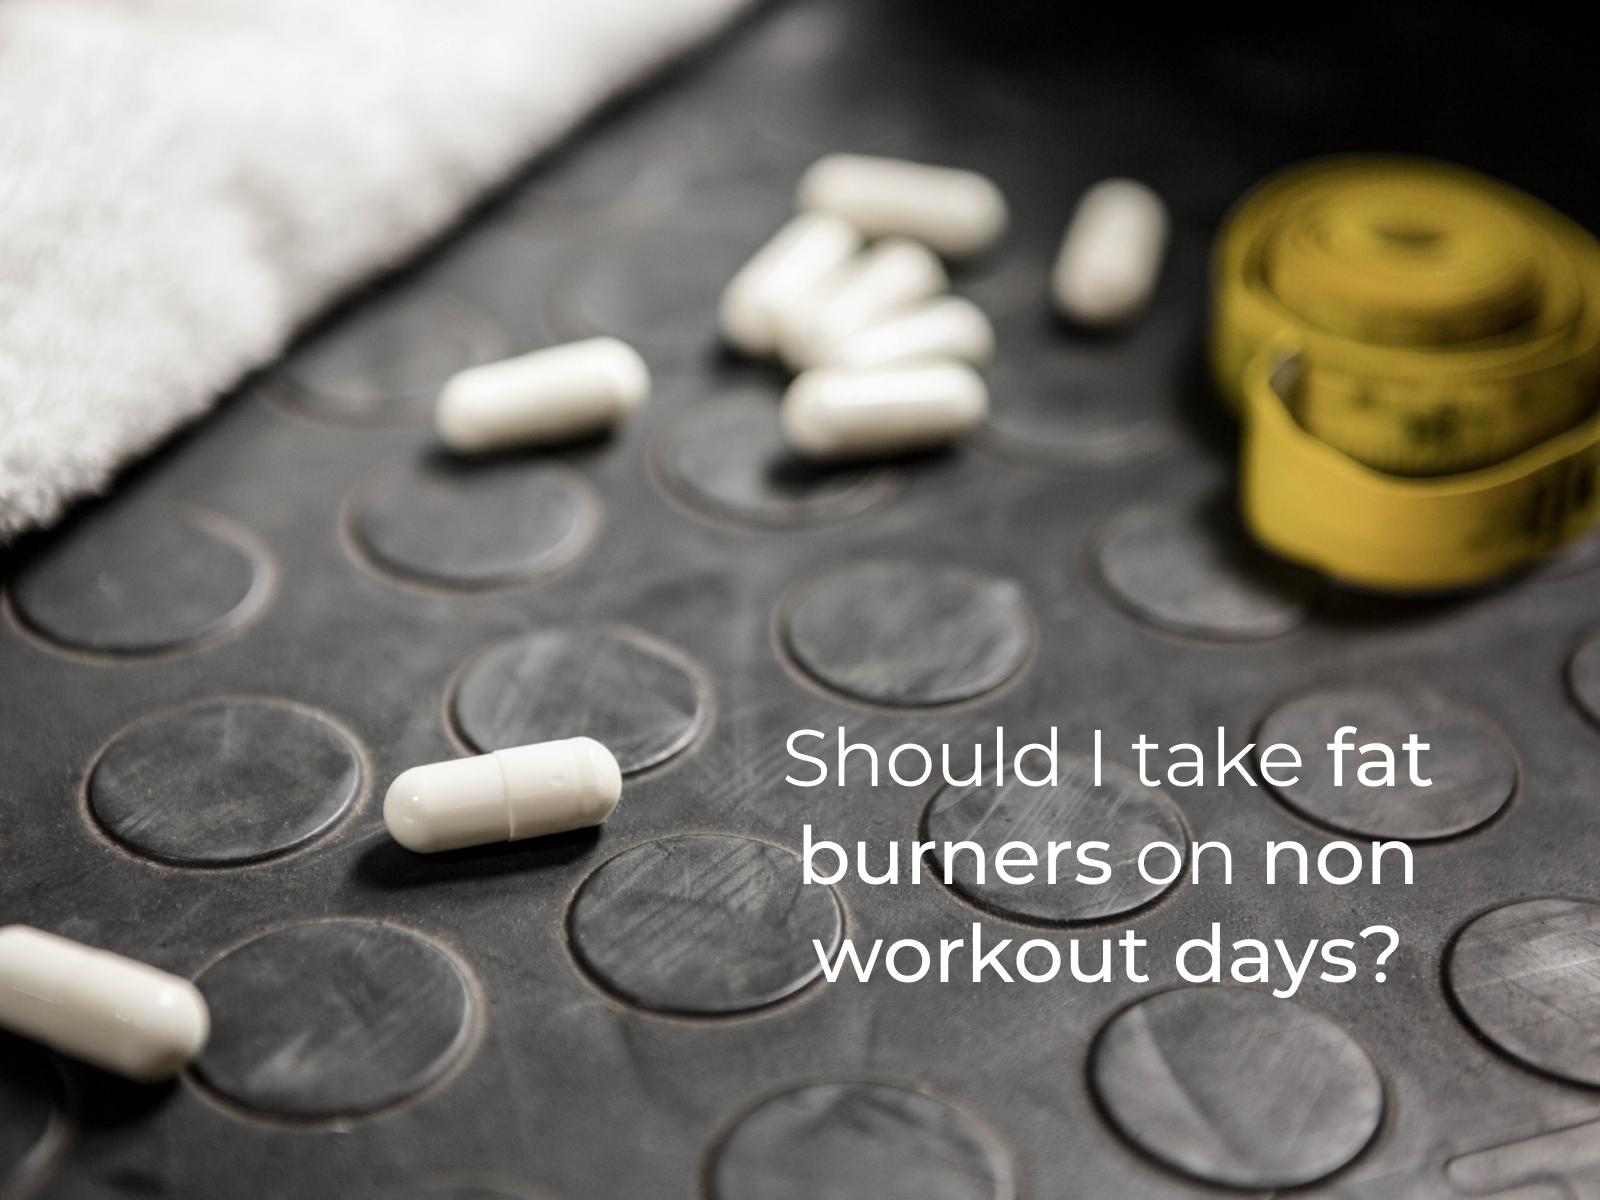 Should I take fat burners on non workout days